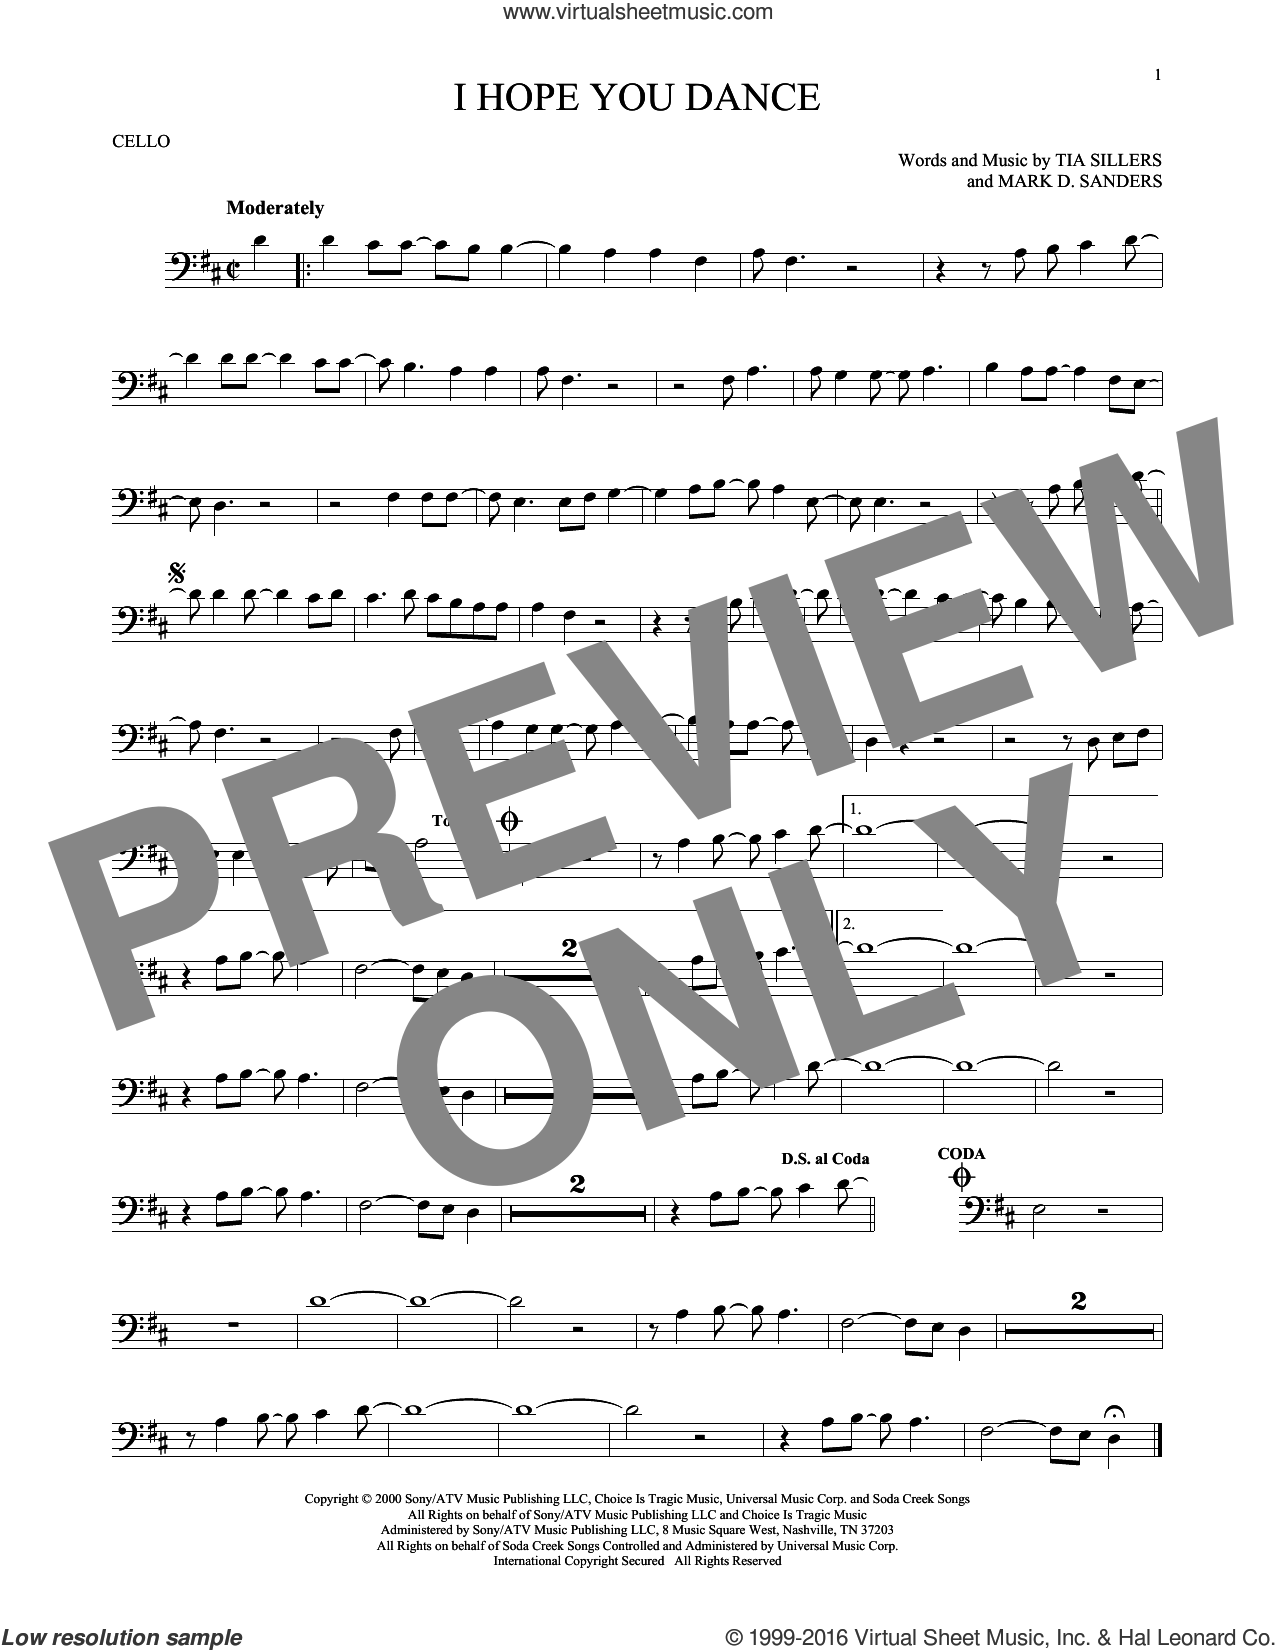 I Hope You Dance sheet music for cello solo by Tia Sillers, Lee Ann Womack with Sons of the Desert and Mark D. Sanders. Score Image Preview.